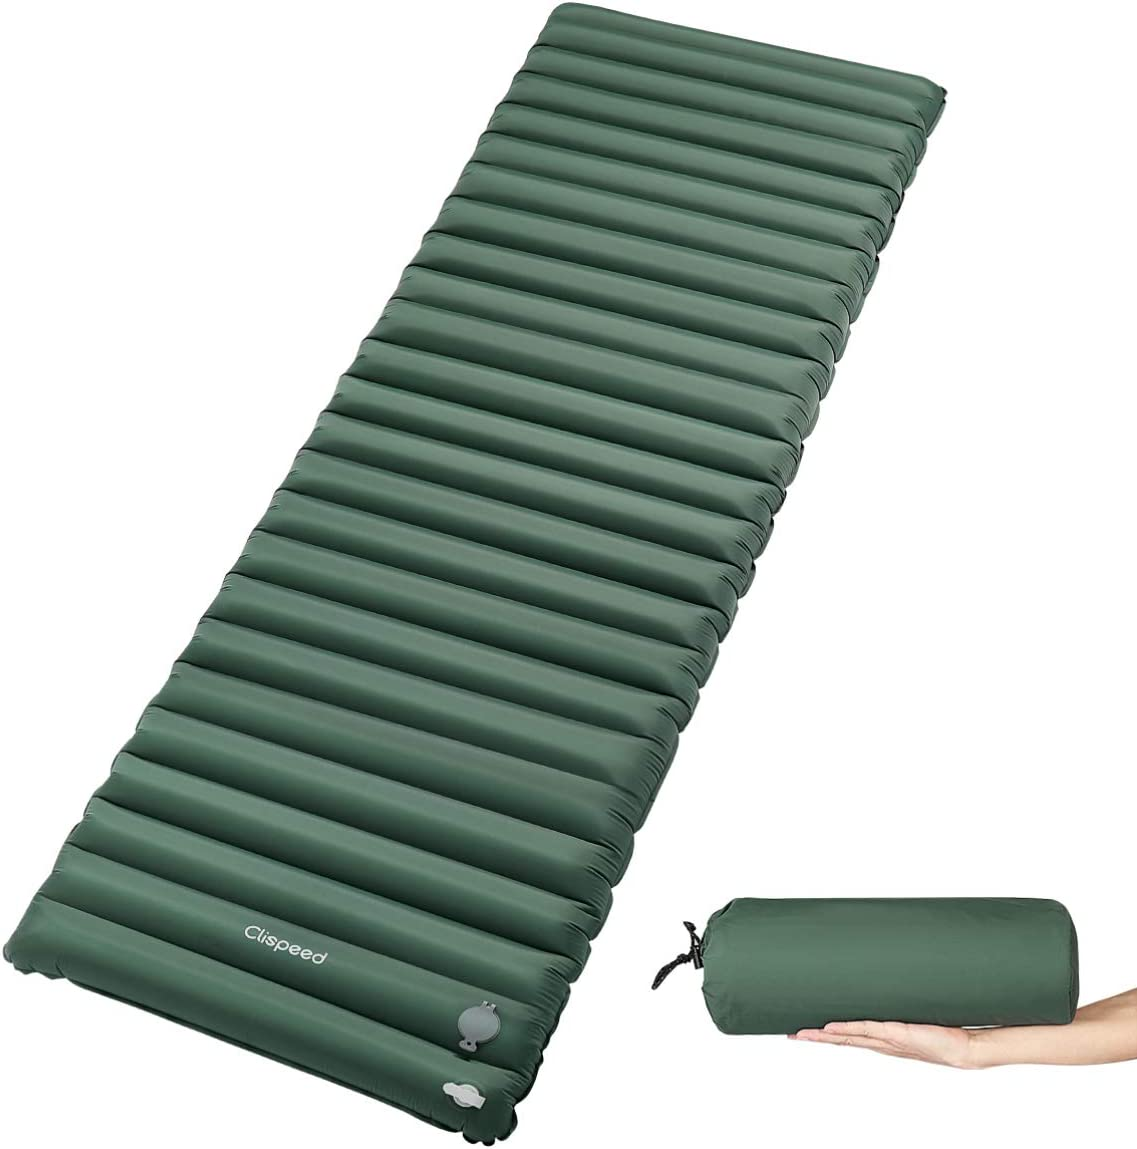 BESPORTBLE Inflatable Detroit Mall Sleeping Pad Waterproof gift Floatable